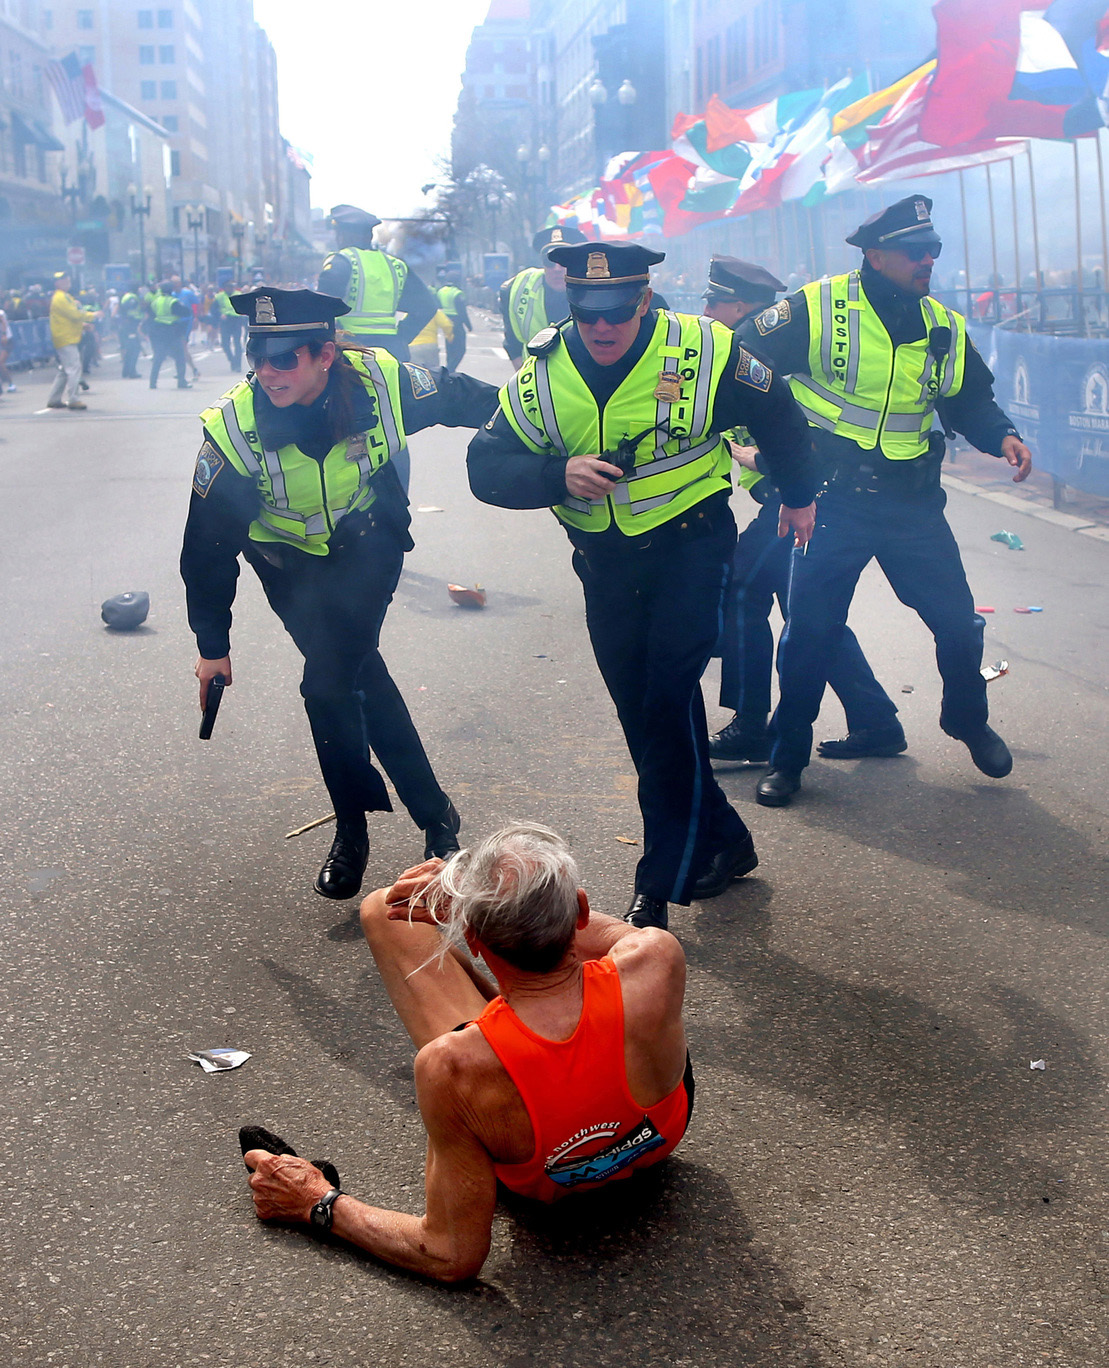 Police officers with their guns drawn heard a second explosion down the street from the finish line of the 117th Boston Marathon. The first explosion knocked down this runner. The image was part of the portfolio that won John Tlumacki the title of NPPA 2014 Photojournalist of the Year (Larger Markets). Photograph by By John Tlumacki-Boston Globe